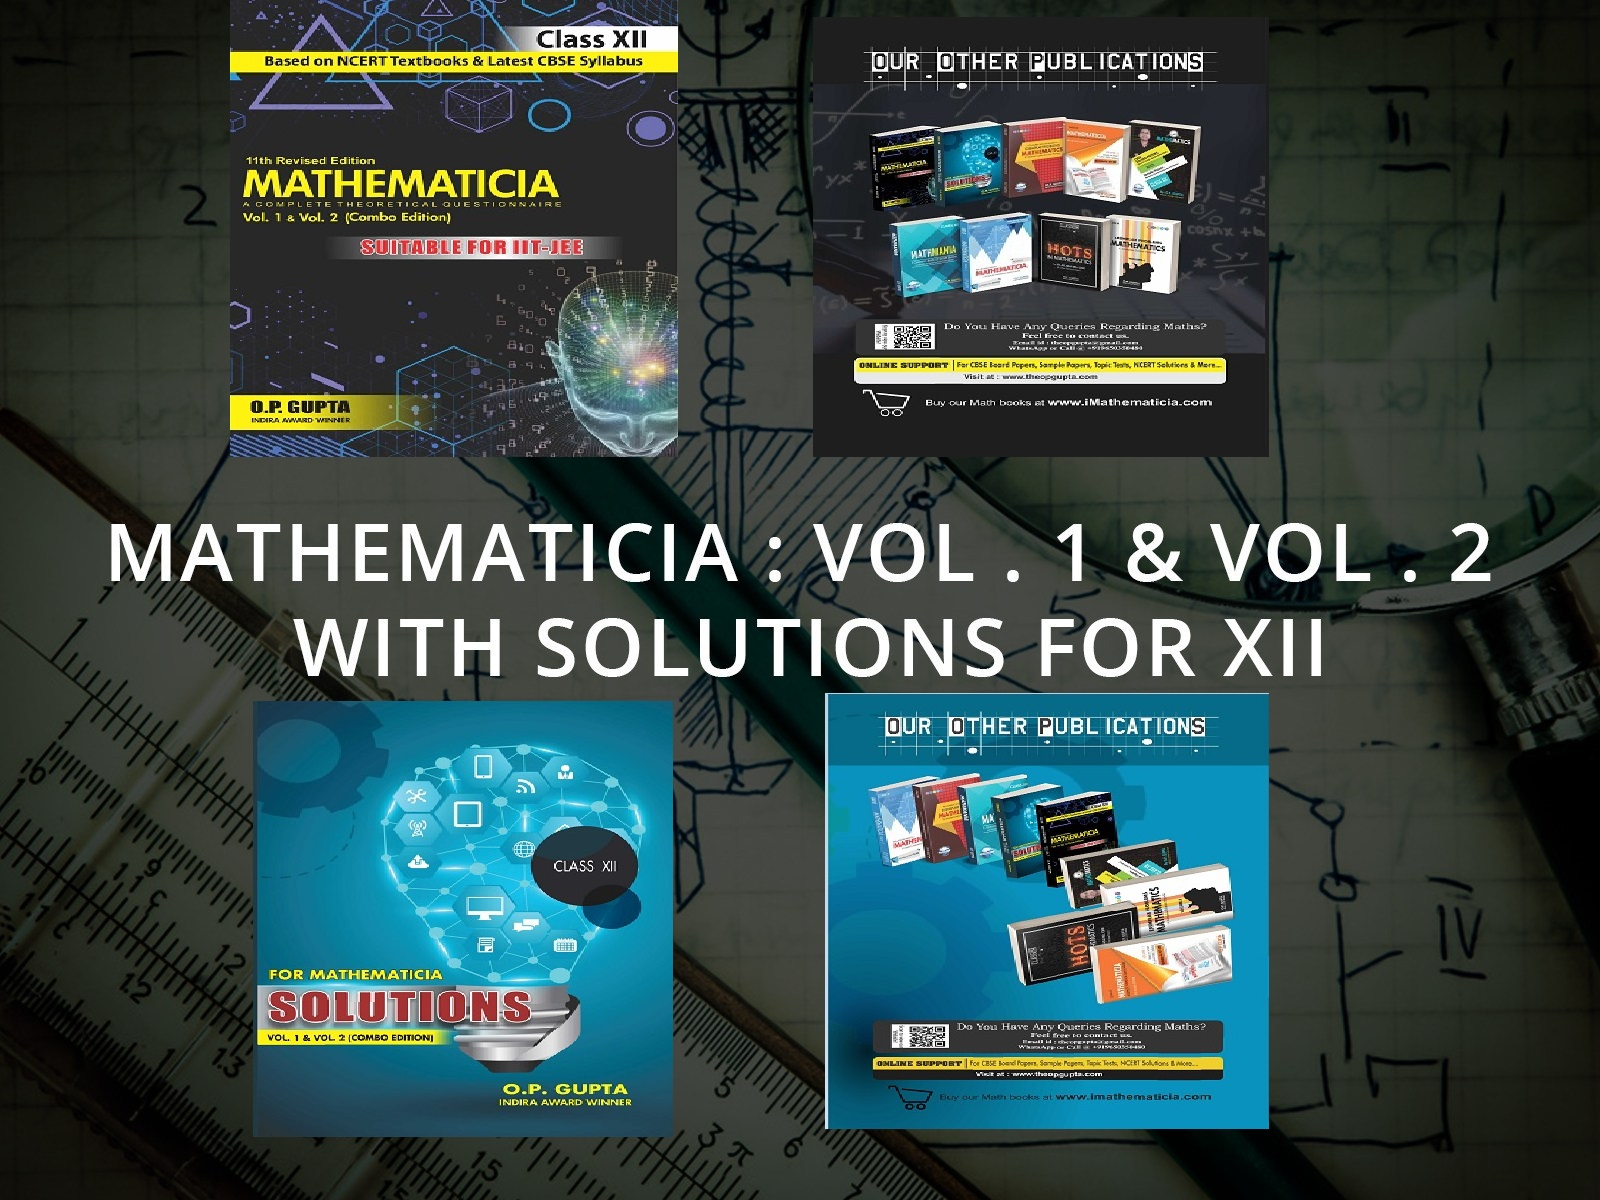 MATHEMATICIA : Vol. 1 & Vol. 2 (Combo Edition) with Solutions for XII